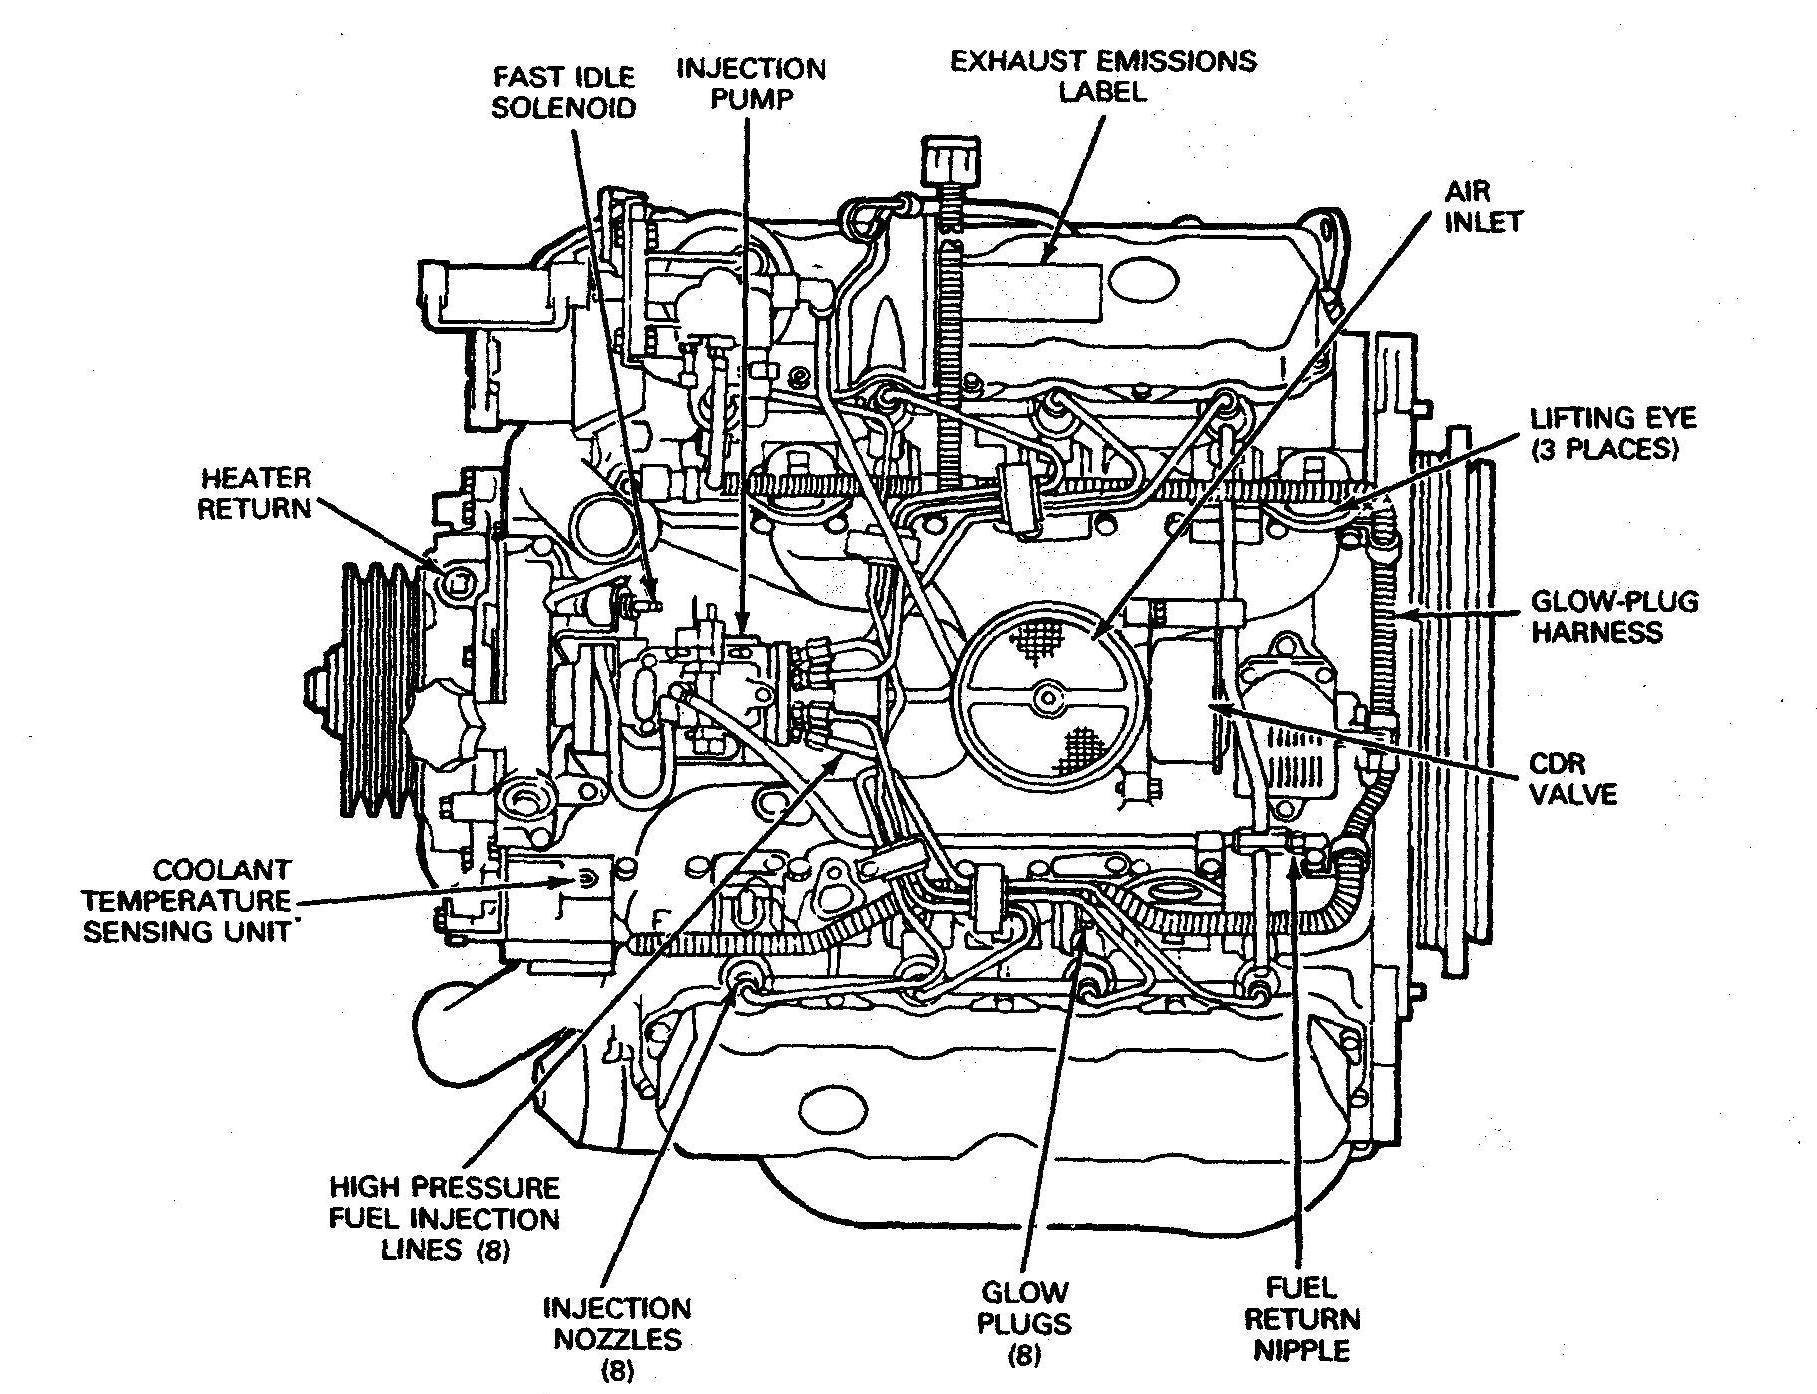 engine diagram labeled my wiring diagram rh detoxicrecenze com Toyota Car  Engine Diagram Simple Car Engine Diagram